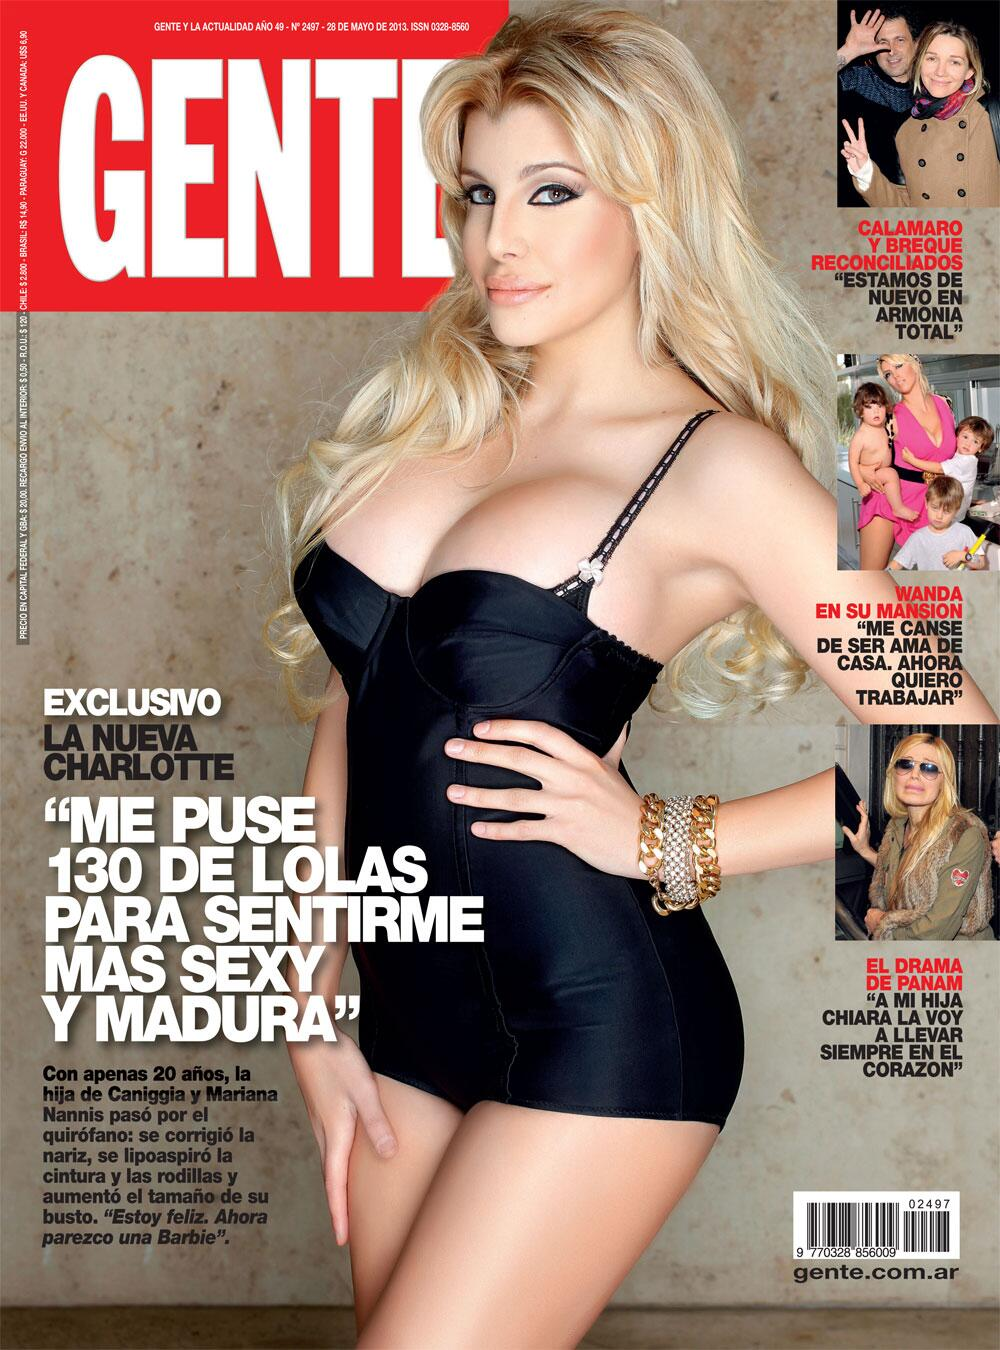 http://www.ciudad.com.ar/sites/default/files/2013/05/28/charlotte_caniggia_revista_gente.jpg.crop_display.jpg